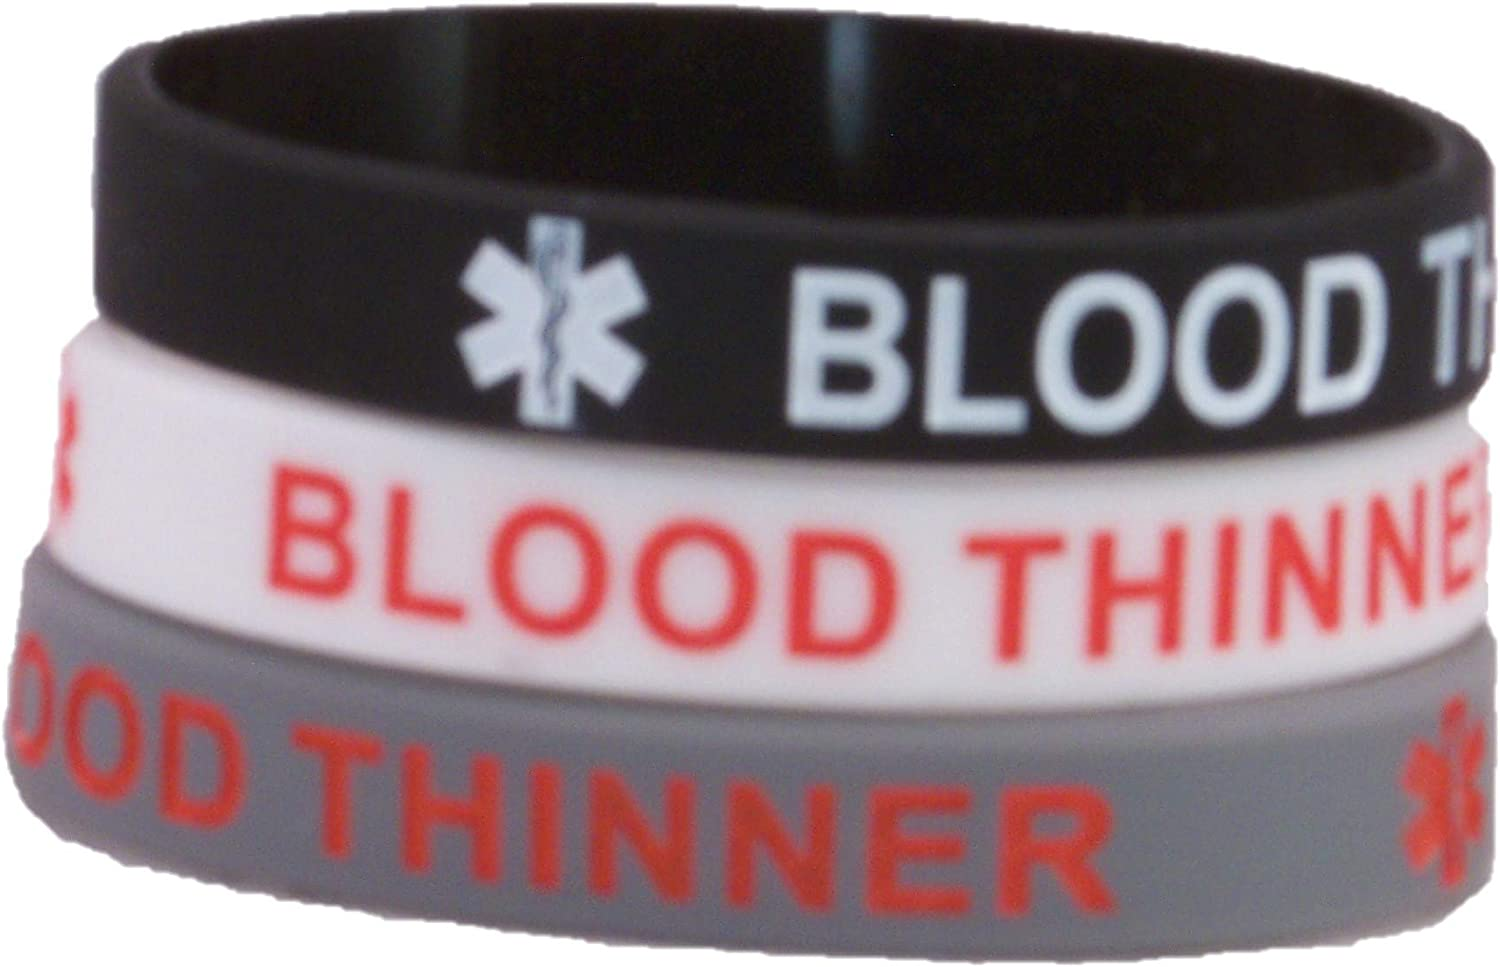 Blood Thinner Regular Size...